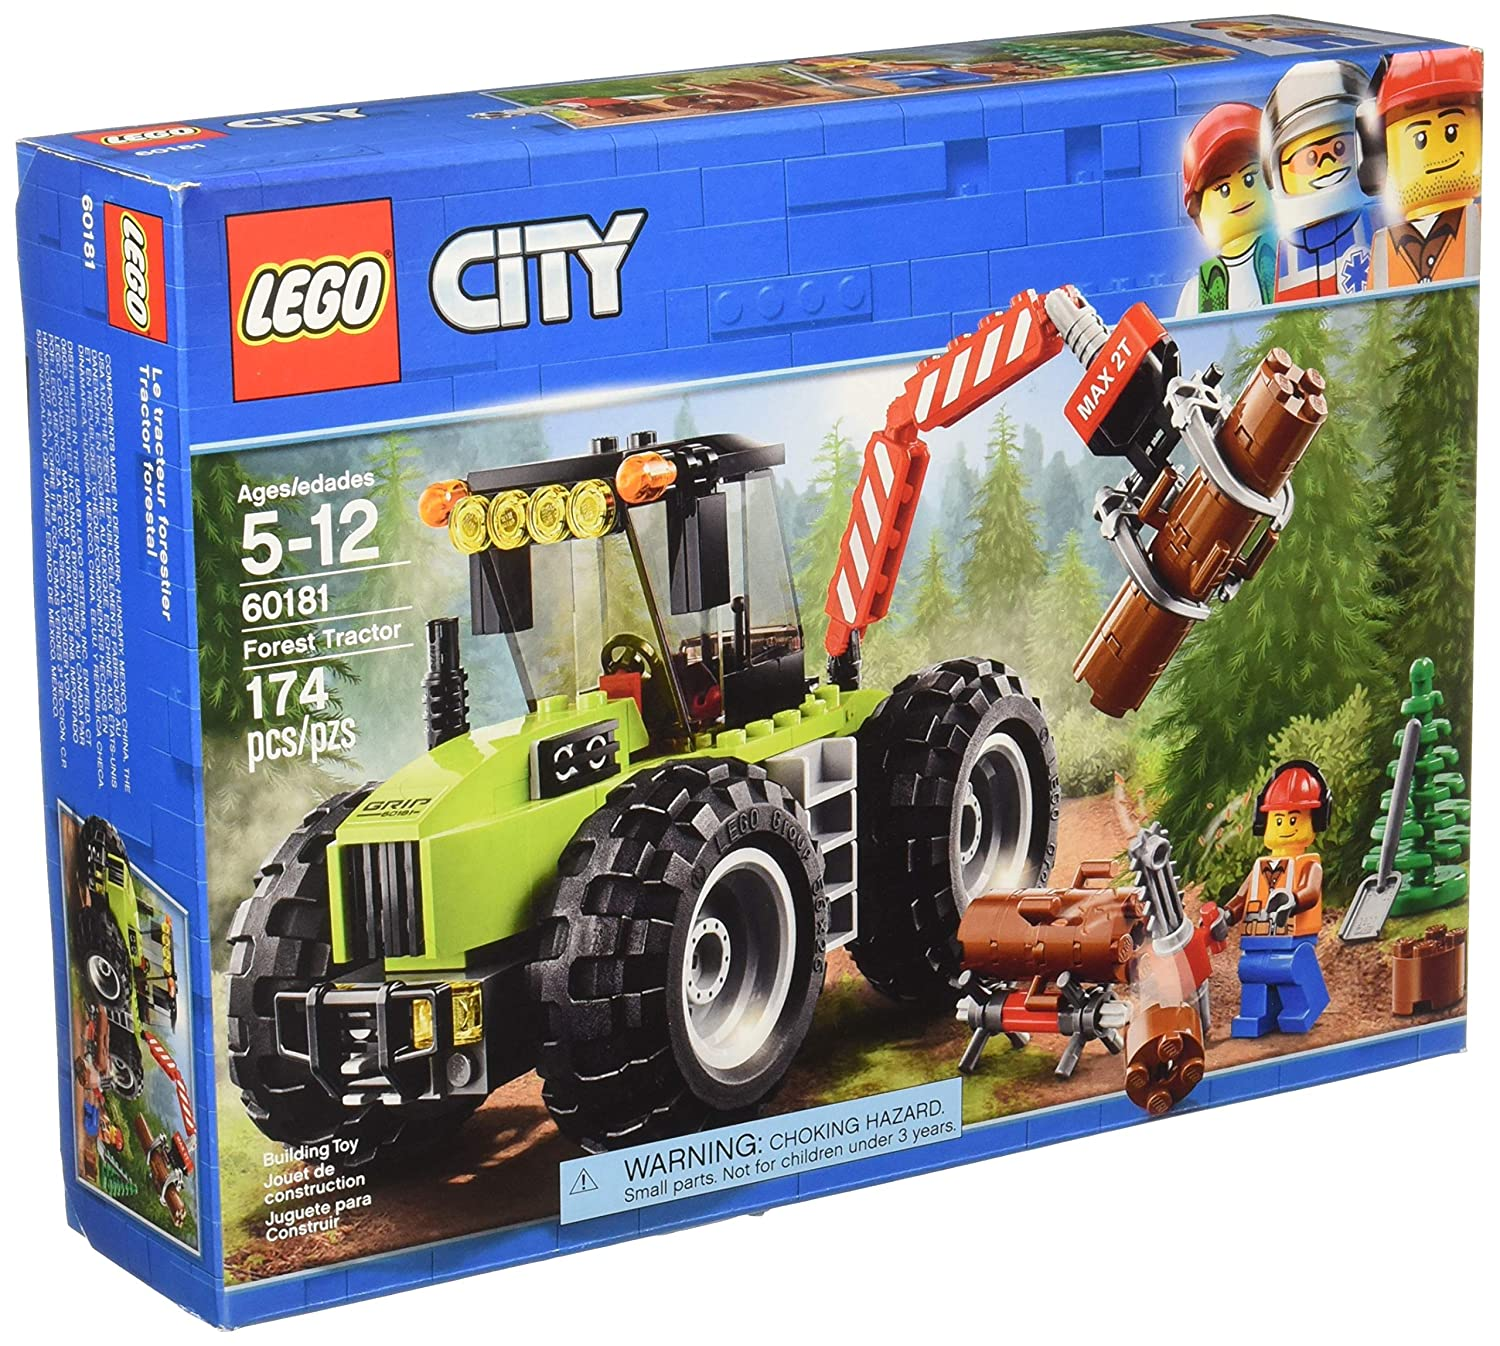 LEGO City Forest Tractor 60181 Building Kit (174 Piece)